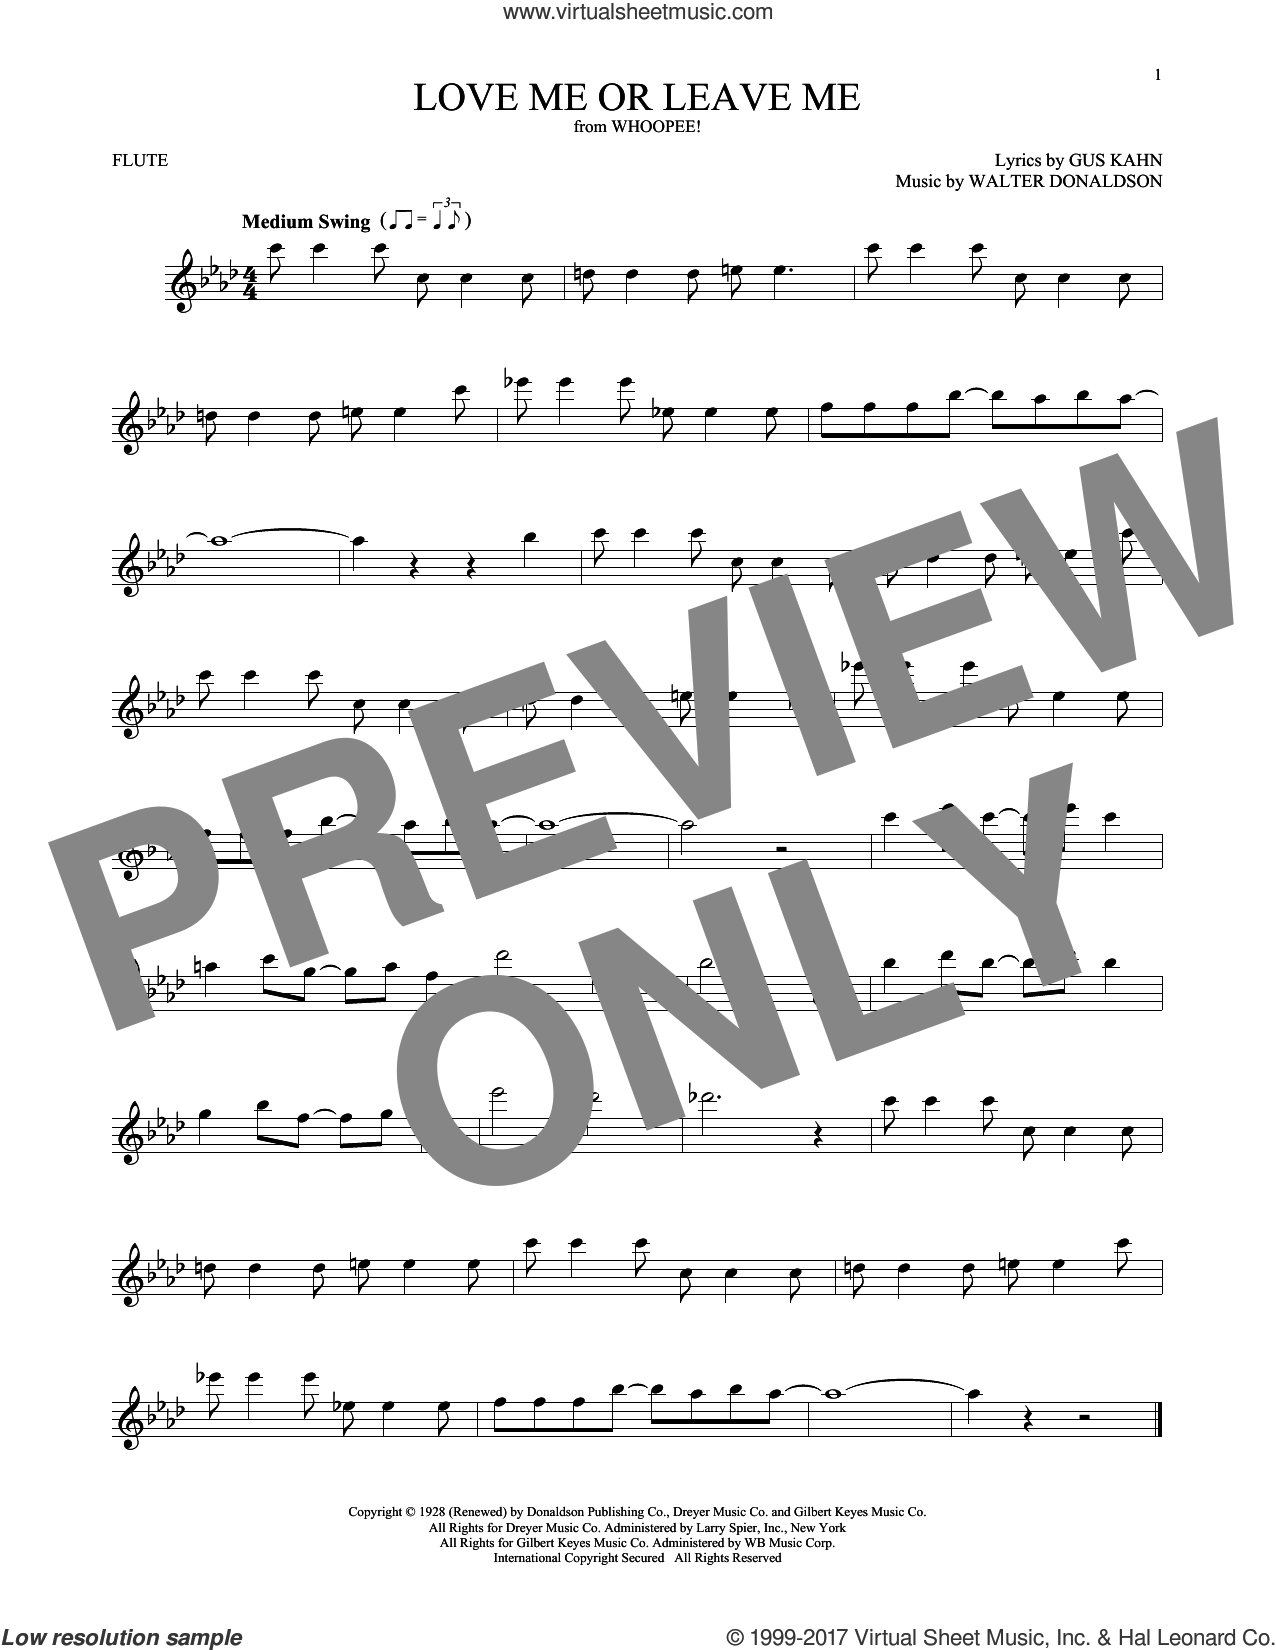 Love Me Or Leave Me sheet music for flute solo by Gus Kahn, Dave Pell and Walter Donaldson, intermediate